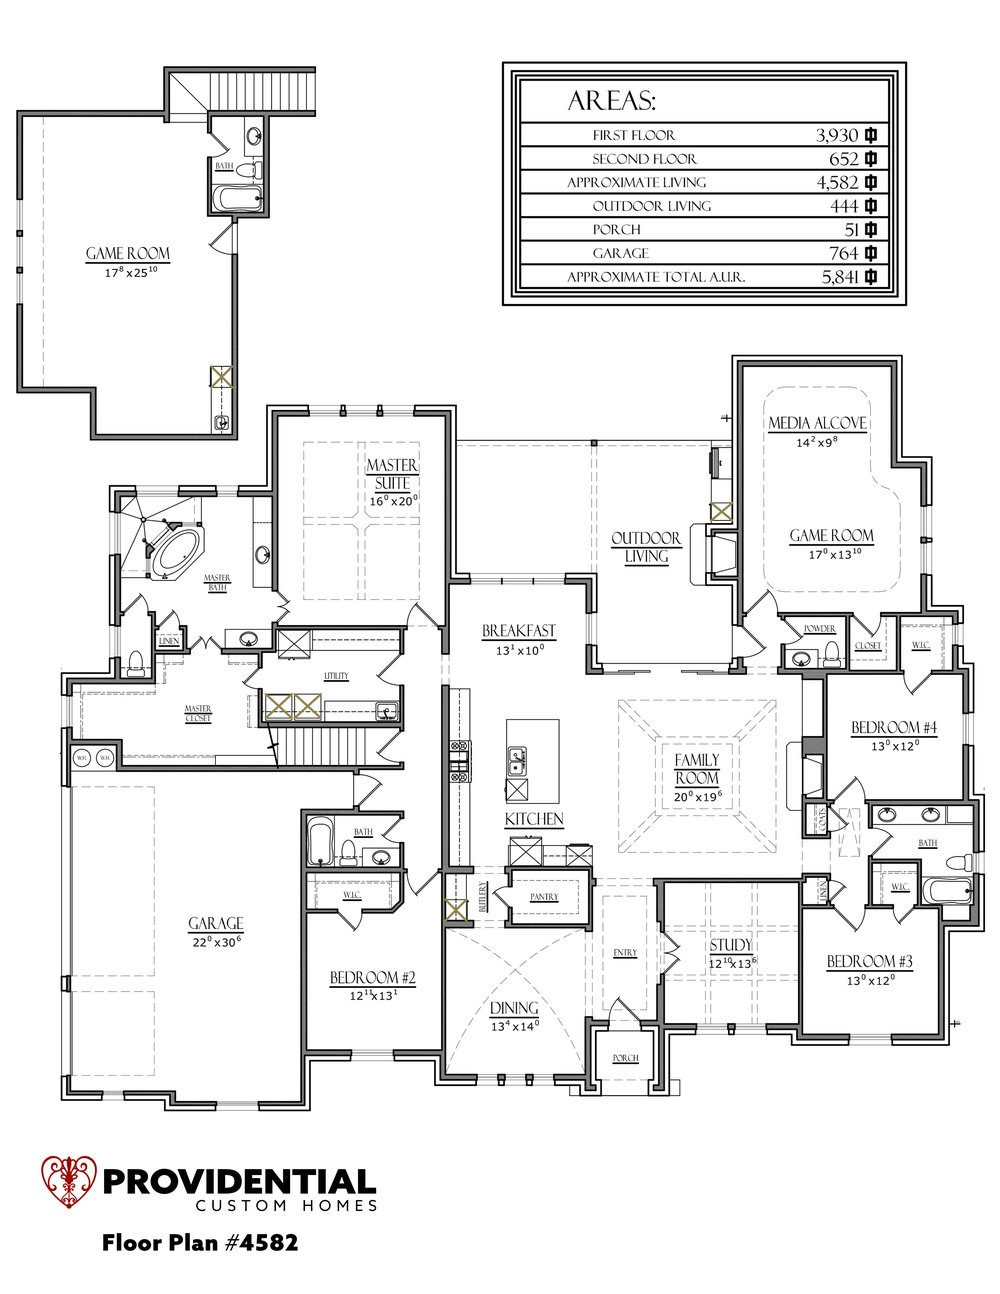 The FLOOR PLAN #4582.jpg